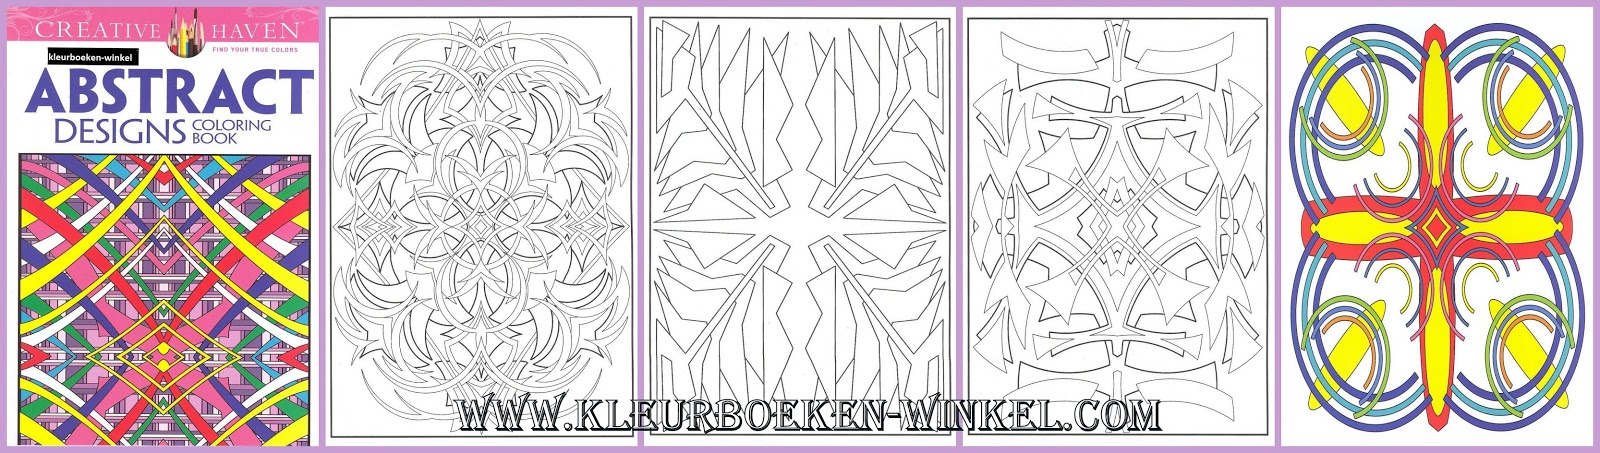 CH 53 abstract designs, kleurboek geometrische patronen